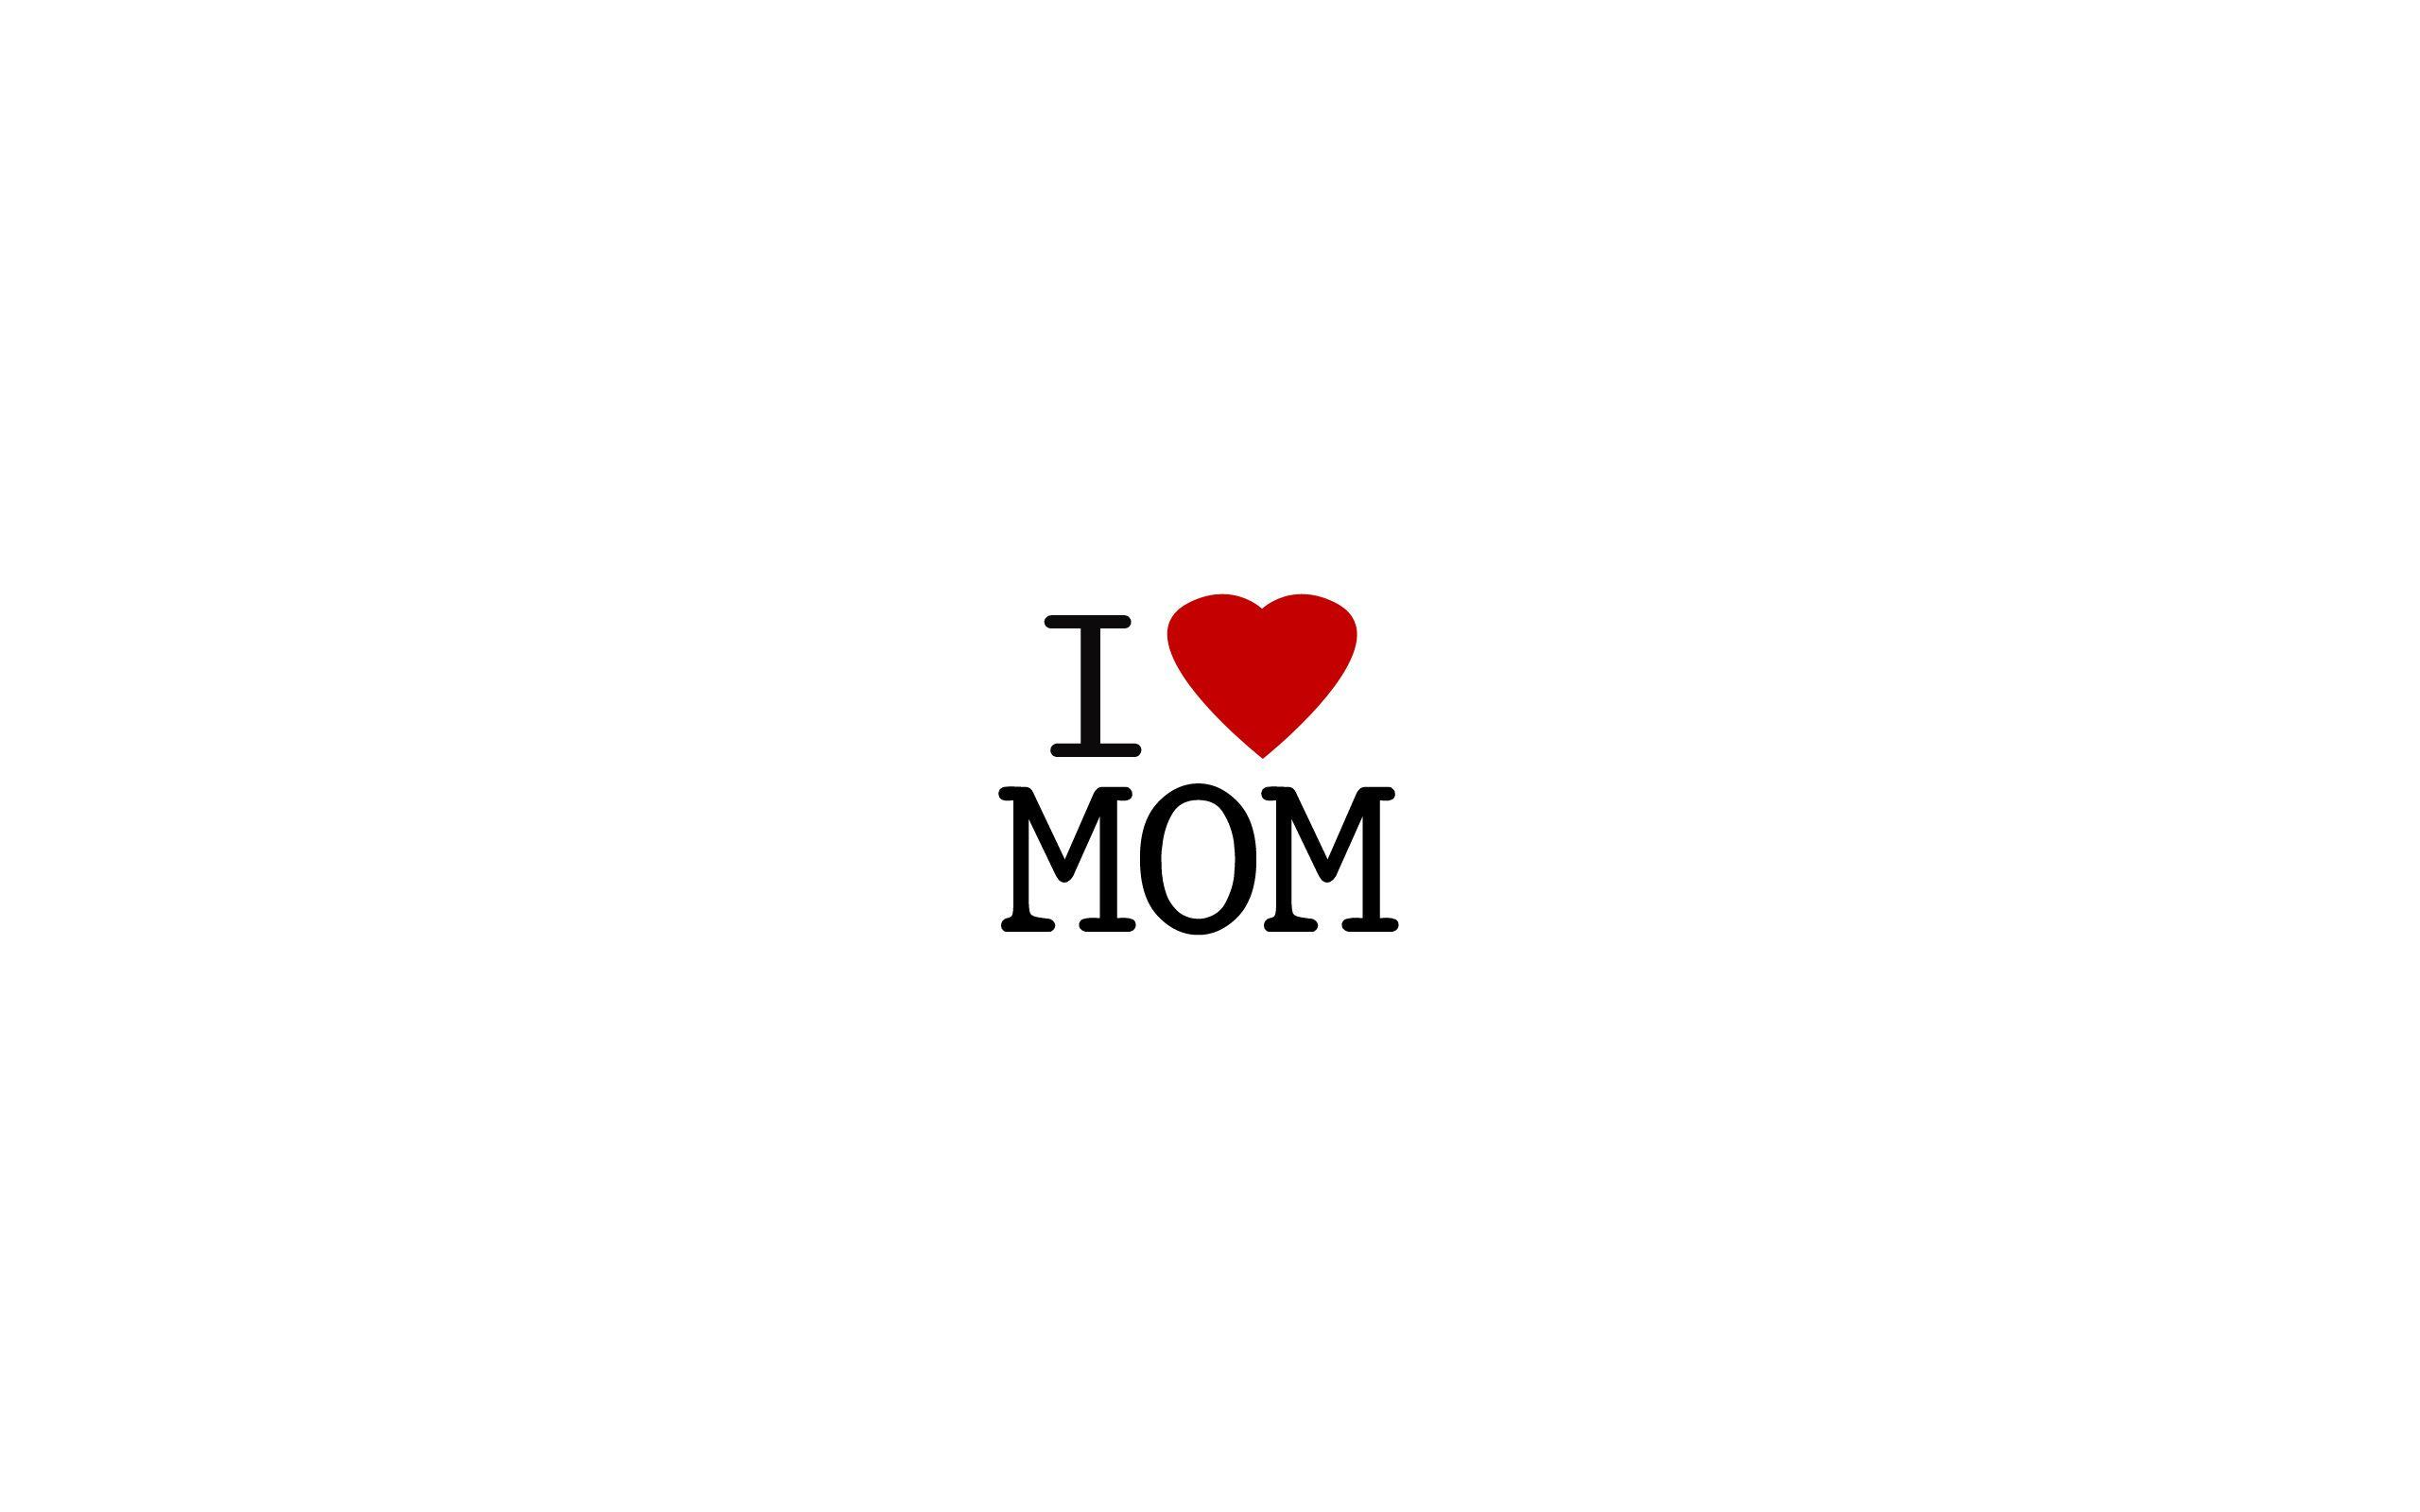 i love you mom and dad pictures i love you mum and dad coloring coloring page pictures mom you dad i love and